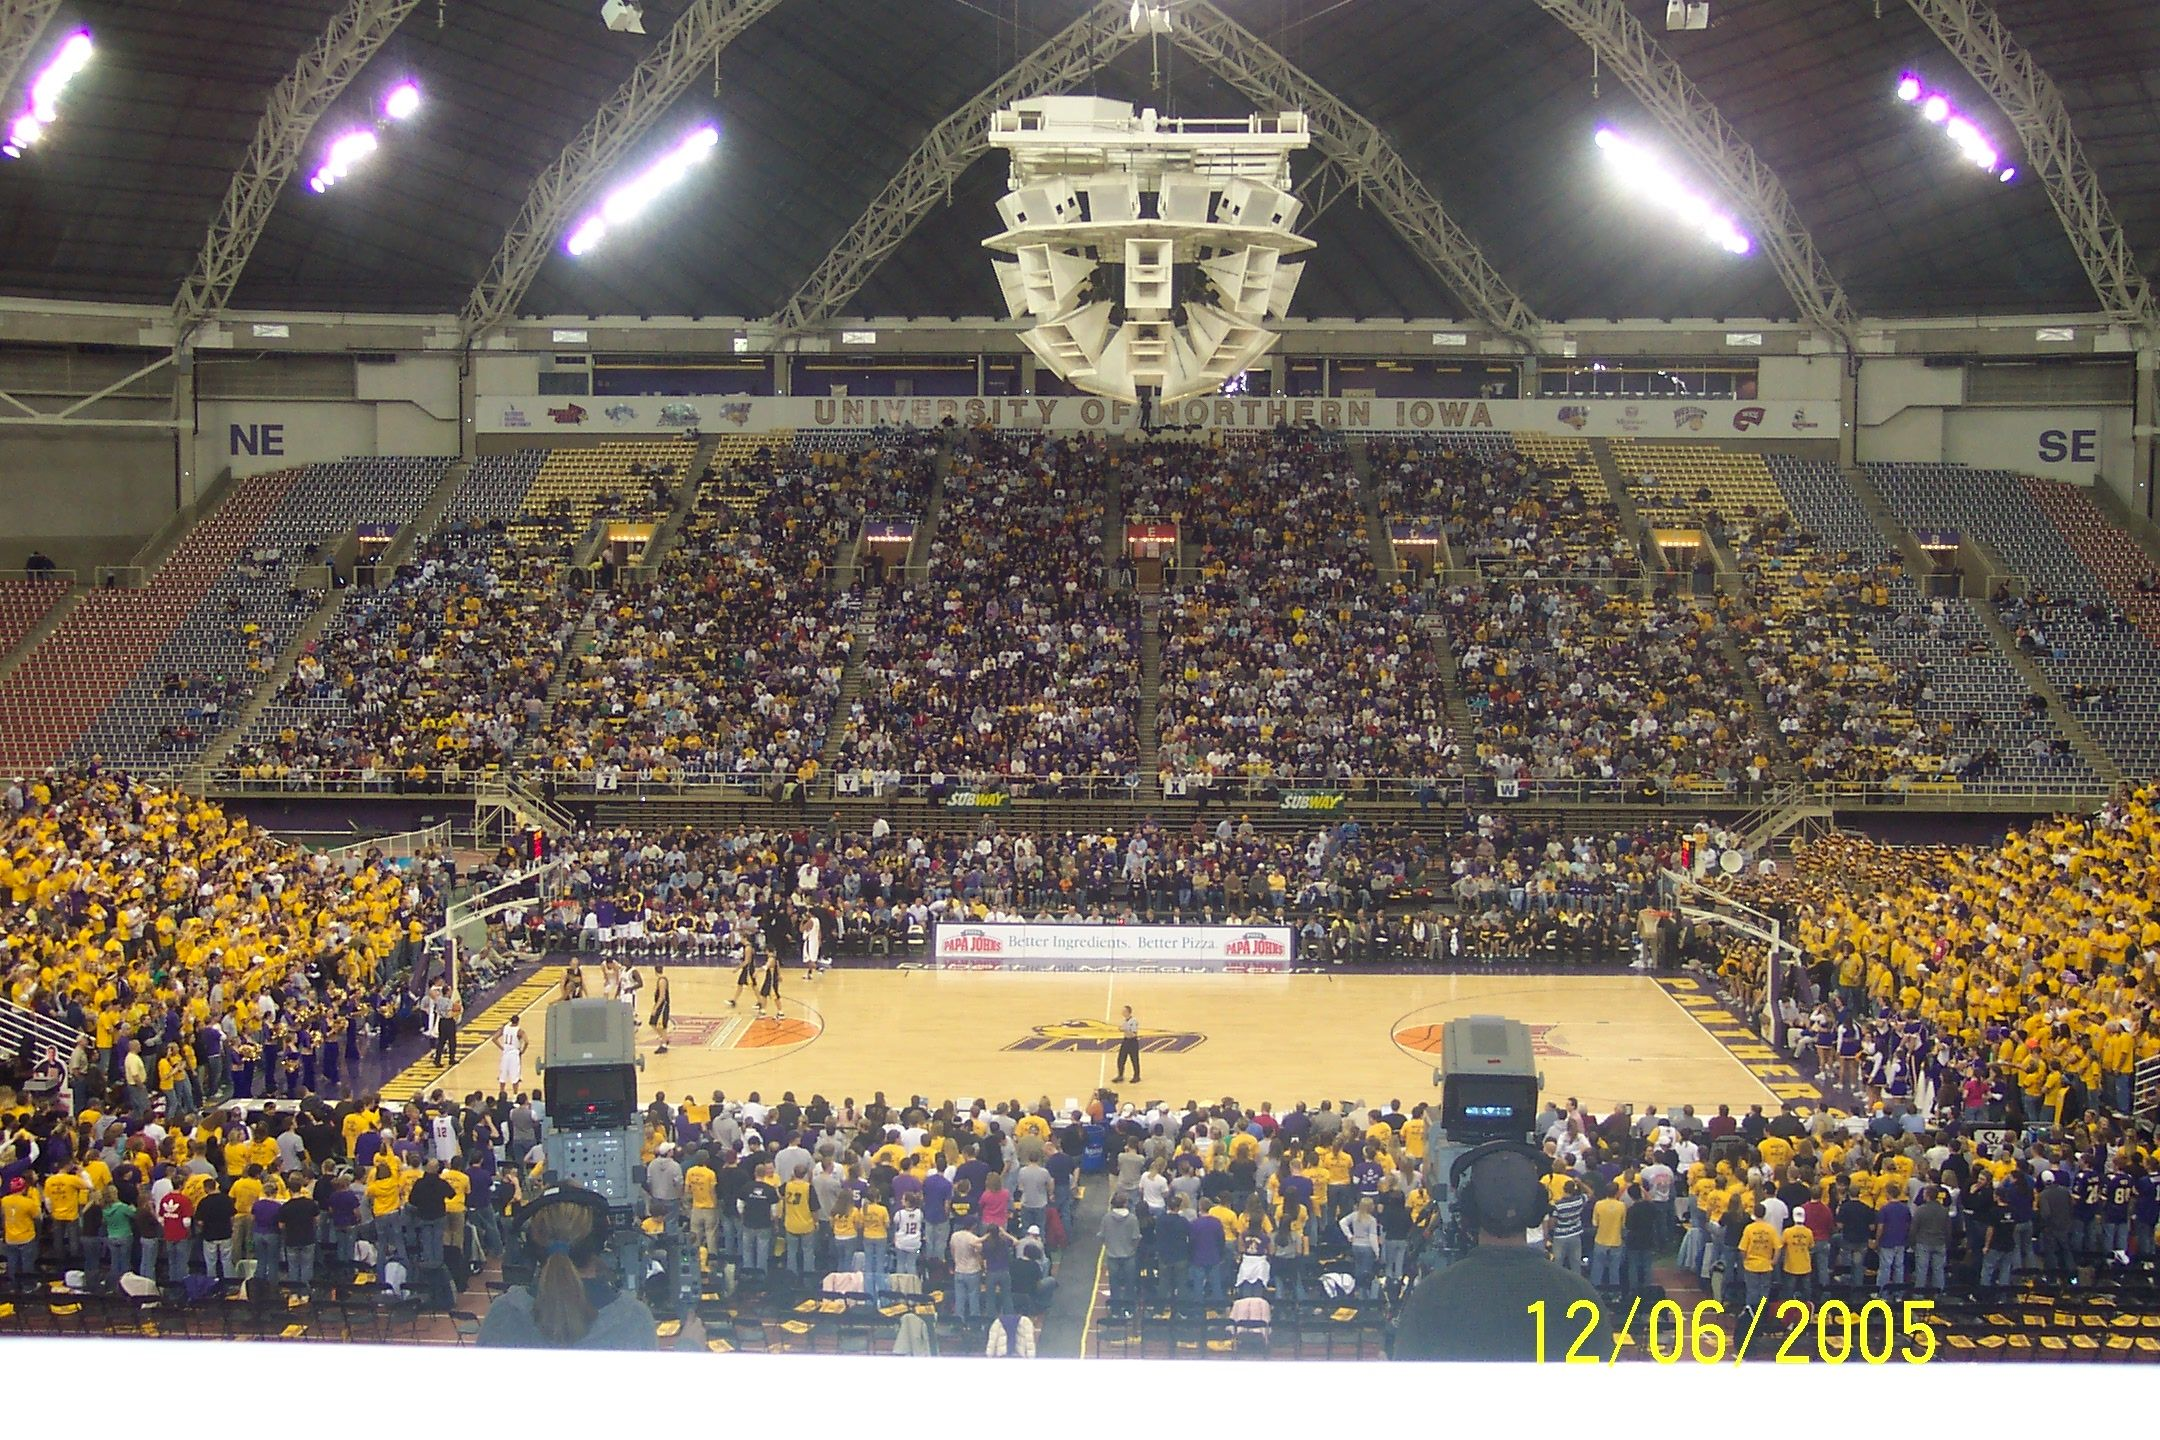 The University of Northern Iowa dome (known as the UNI Dome ...